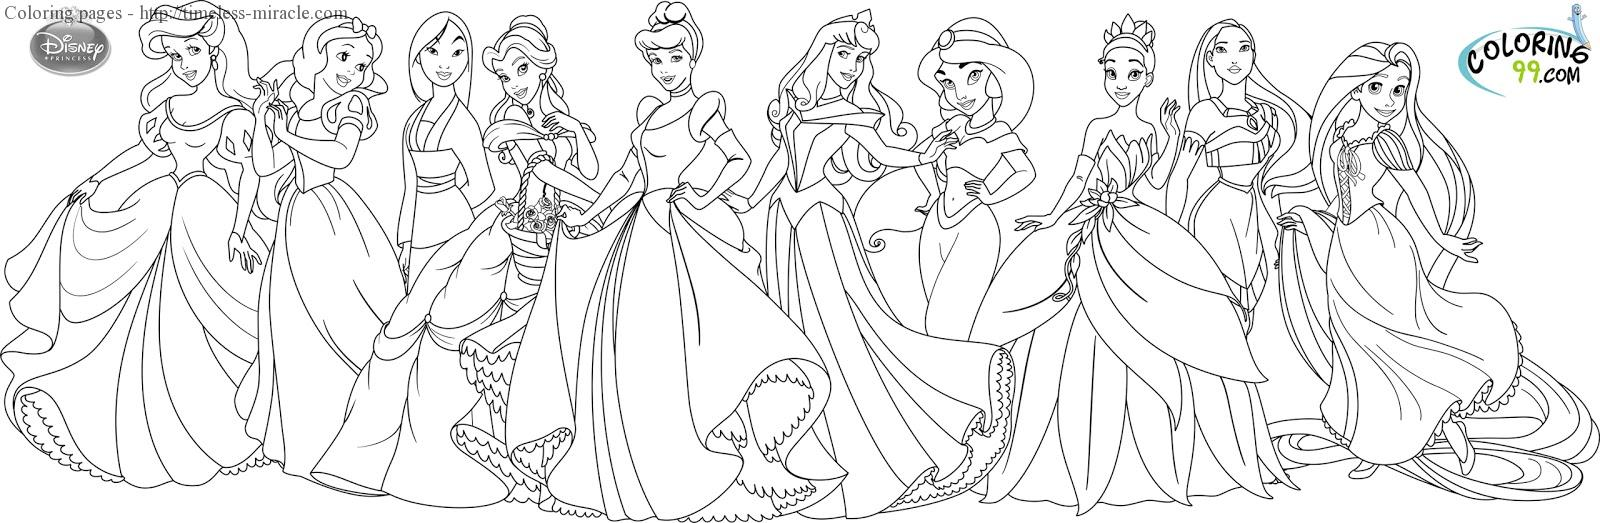 coloring : Disney World Coloring Pages Disney World Coloring Pages ... | 523x1600